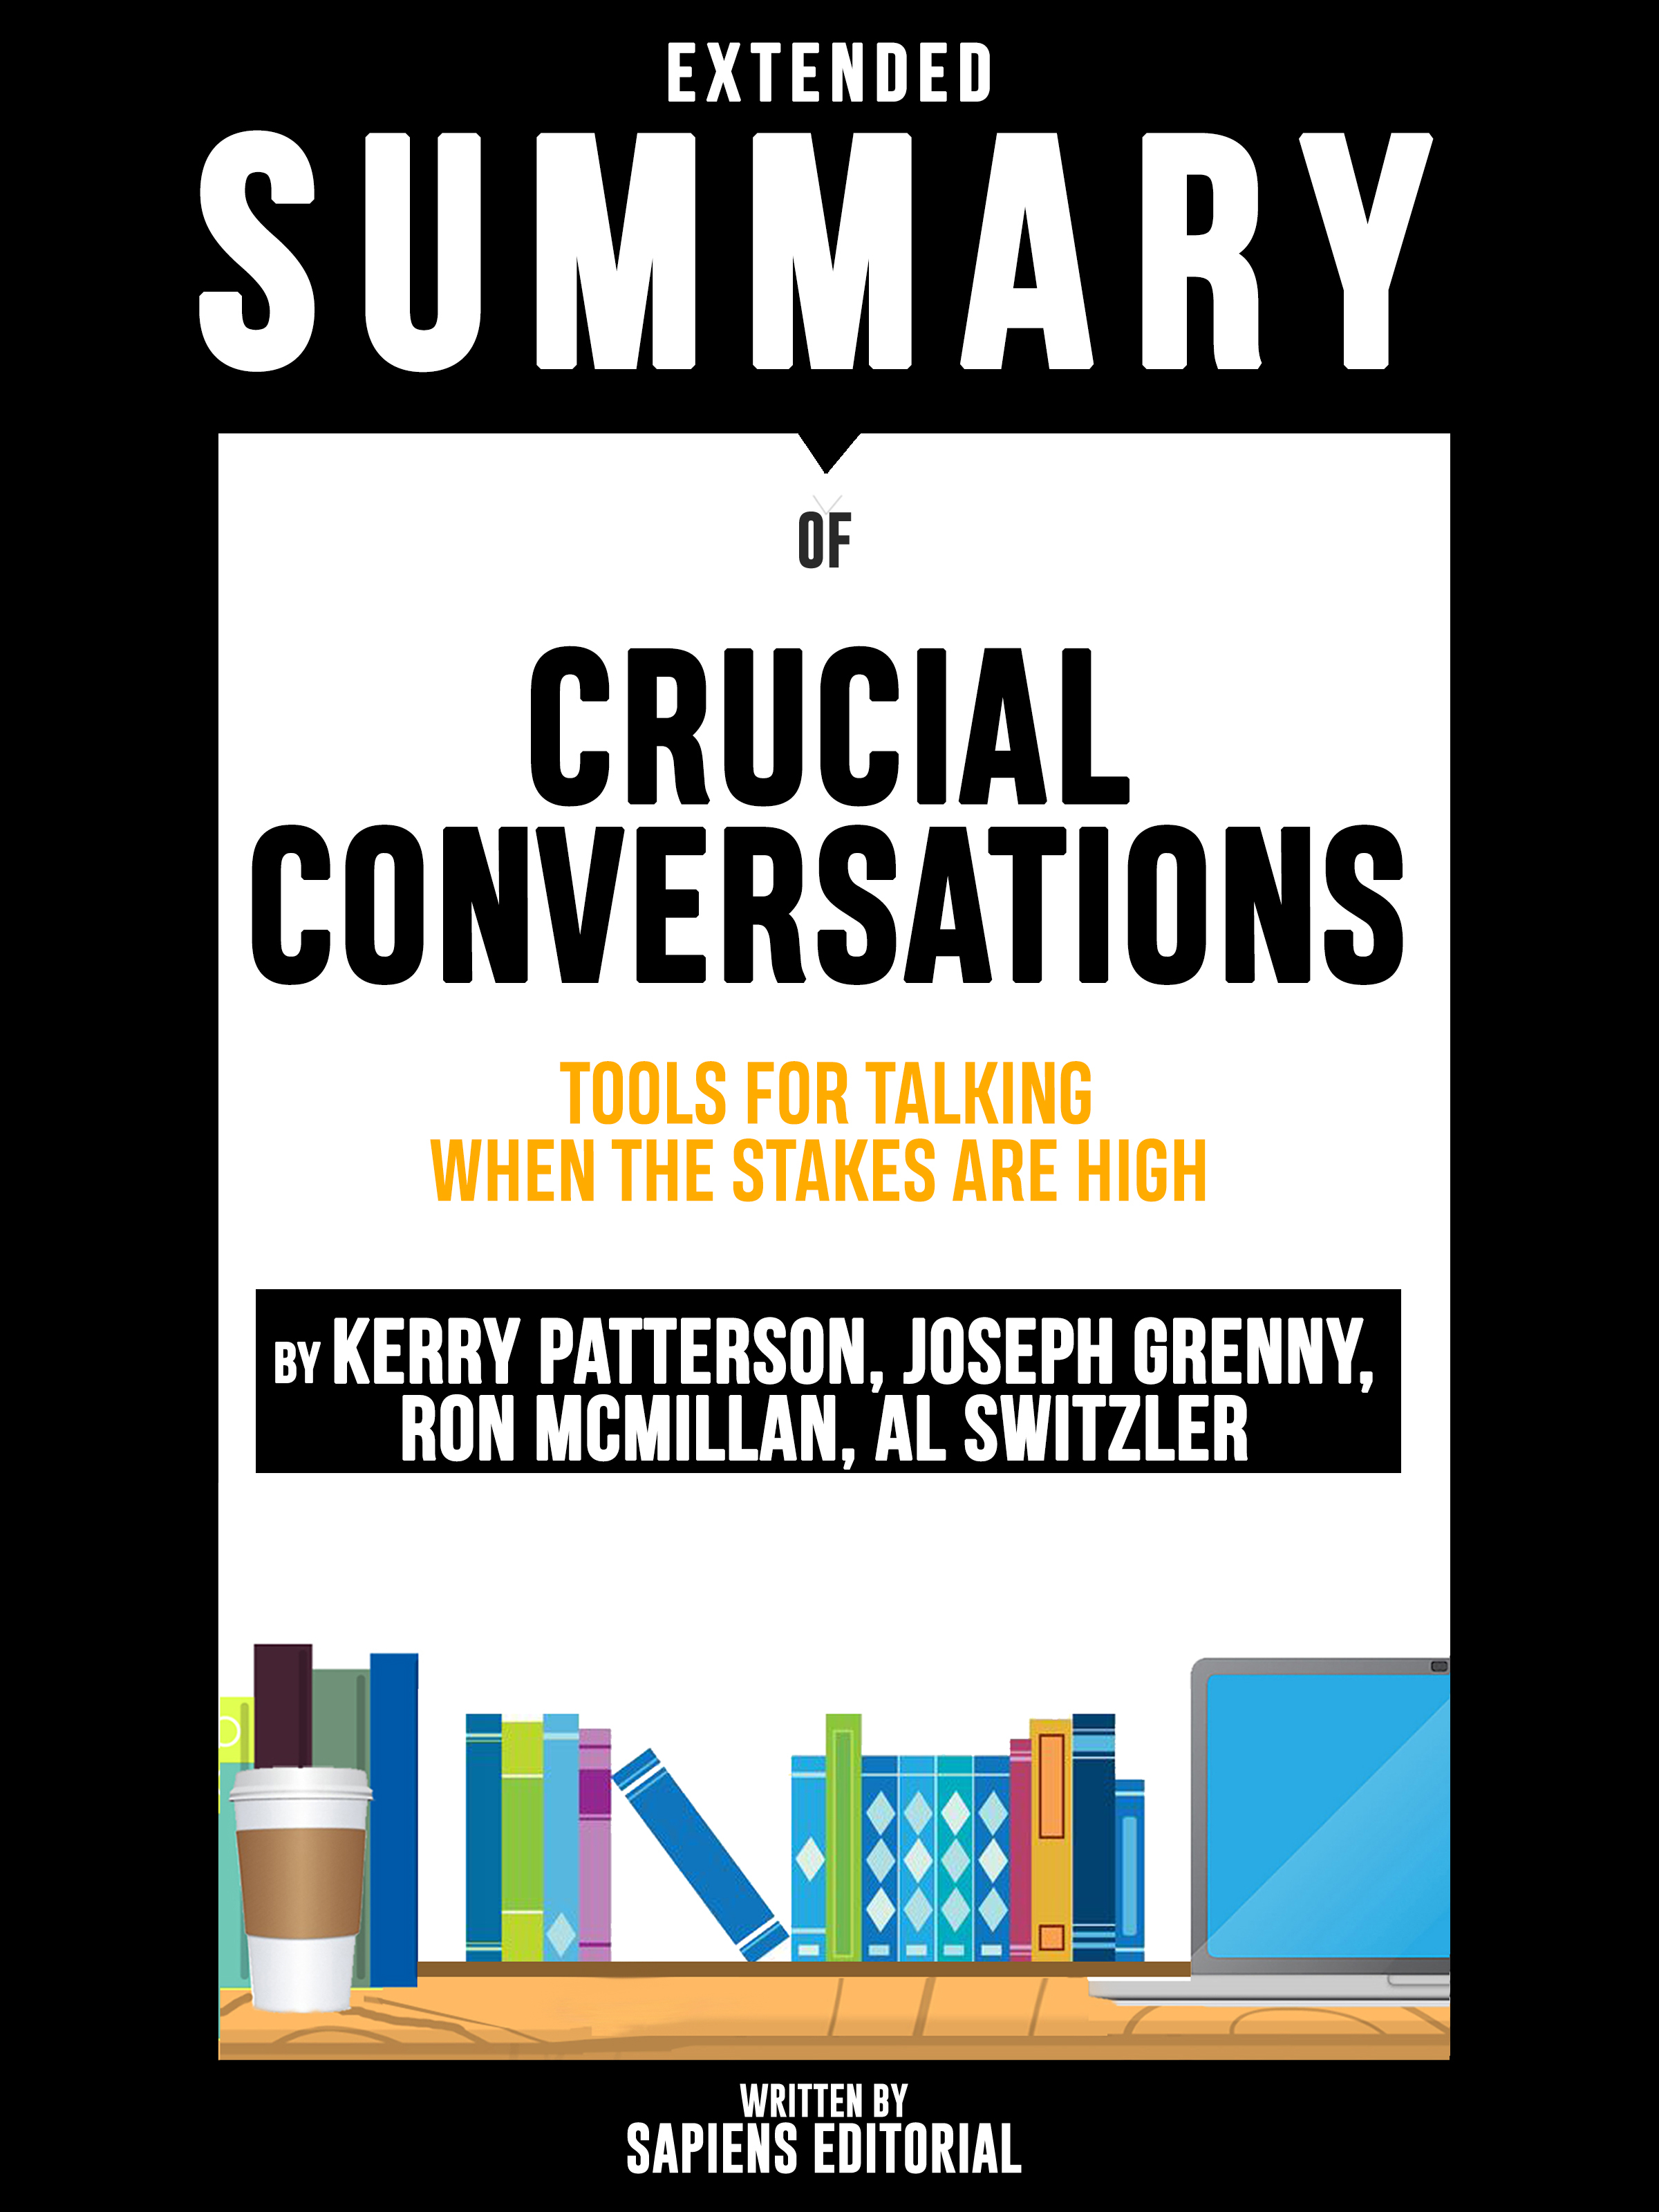 Sapiens Editorial Extended Summary Of Crucial Conversations: Tools For Talking When The Stakes Are High - By Kerry Patterson, Joseph Grenny, Ron McMillan, Al Switzler mohammad salehi validation of a high stakes test